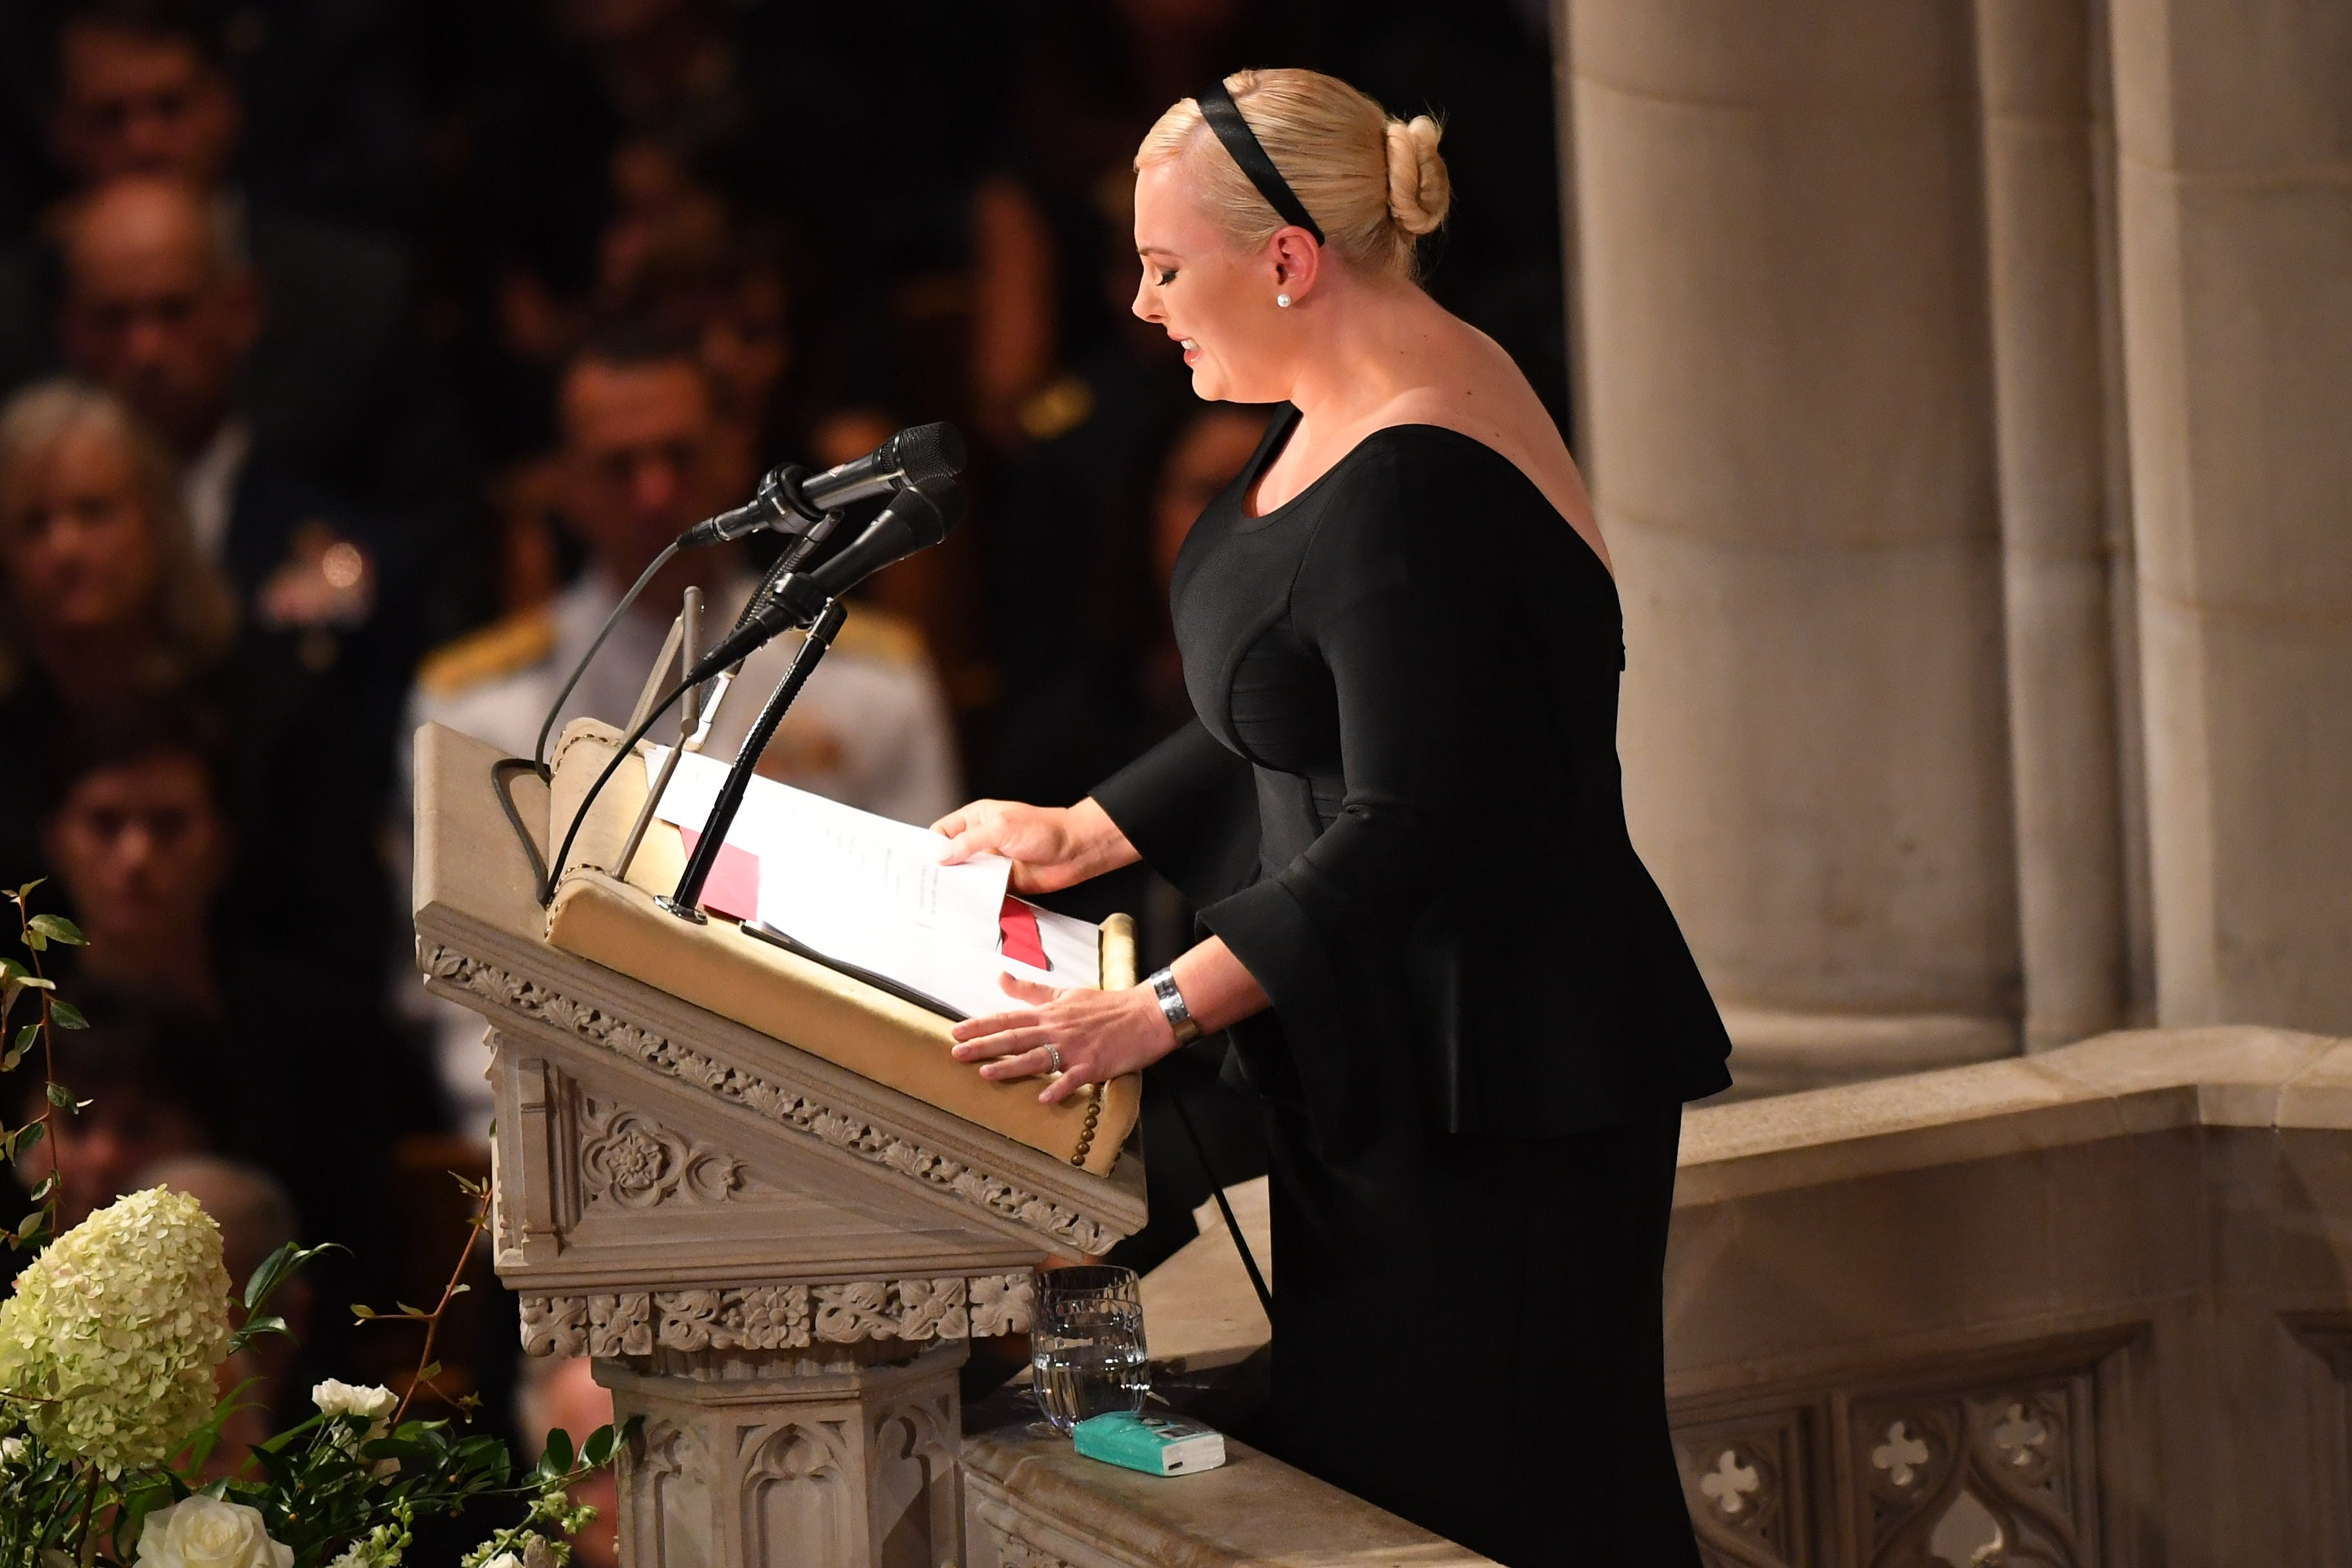 Donald Trump's apparent response to Meghan McCain's eulogy for her dad is a MAGA tweet